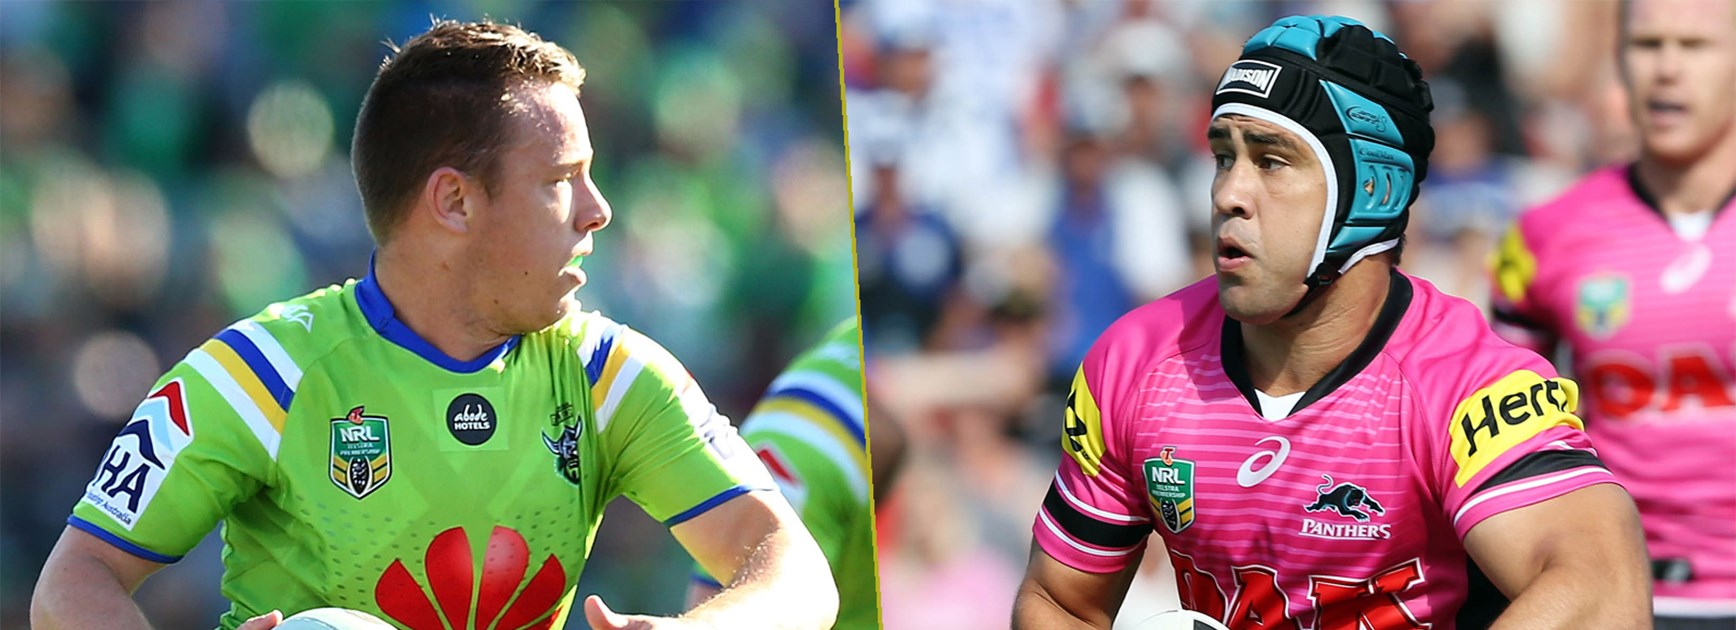 Raiders halfback Sam Williams and Panthers playmaker Jamie Soward will have a big say on how this game plays out.